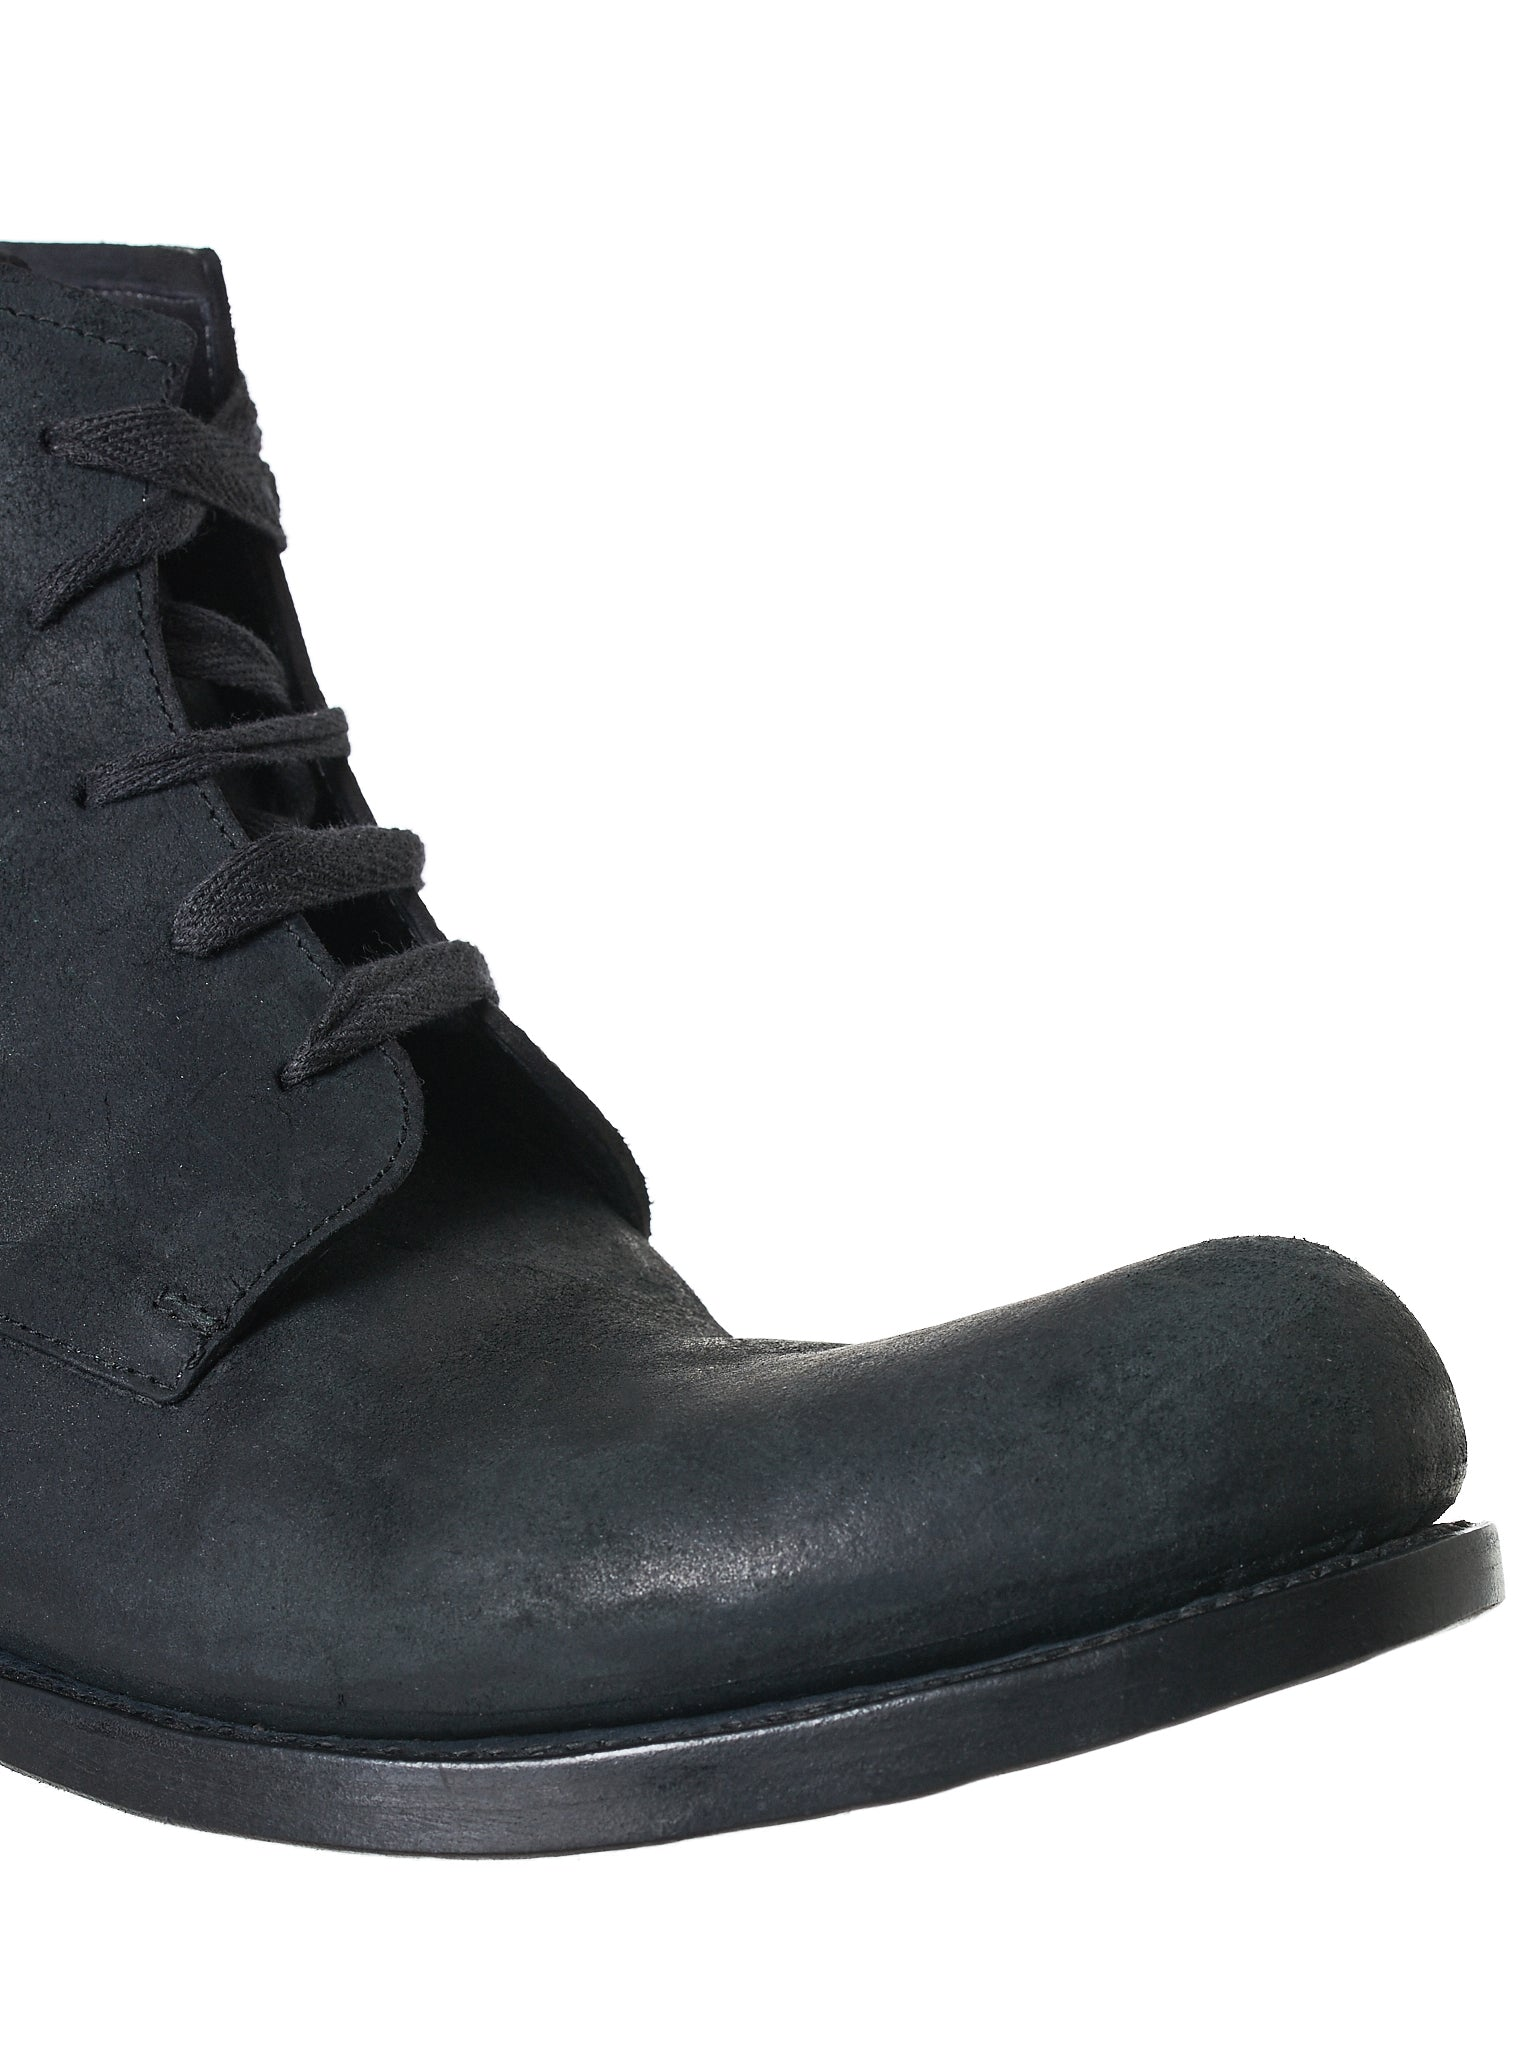 Reverse Horse Leather Boot (06-HORSE-REVERSE-BLACK)